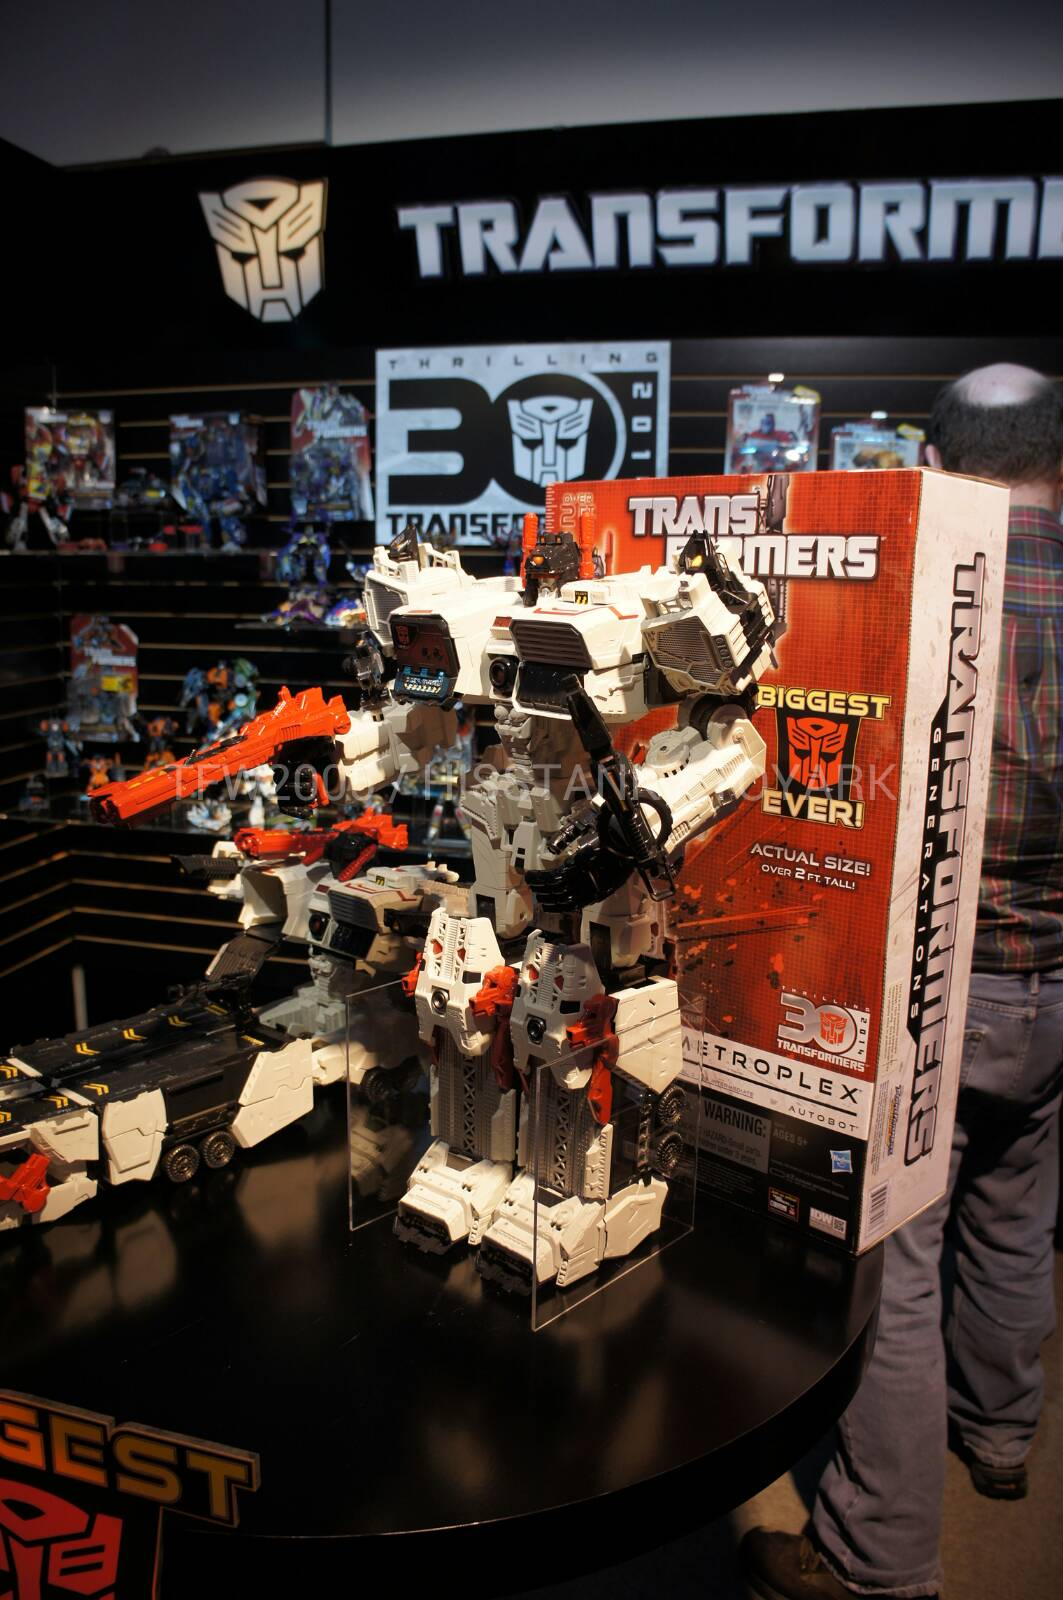 fall of cybertron metroplex announced at hasbro toy fair event